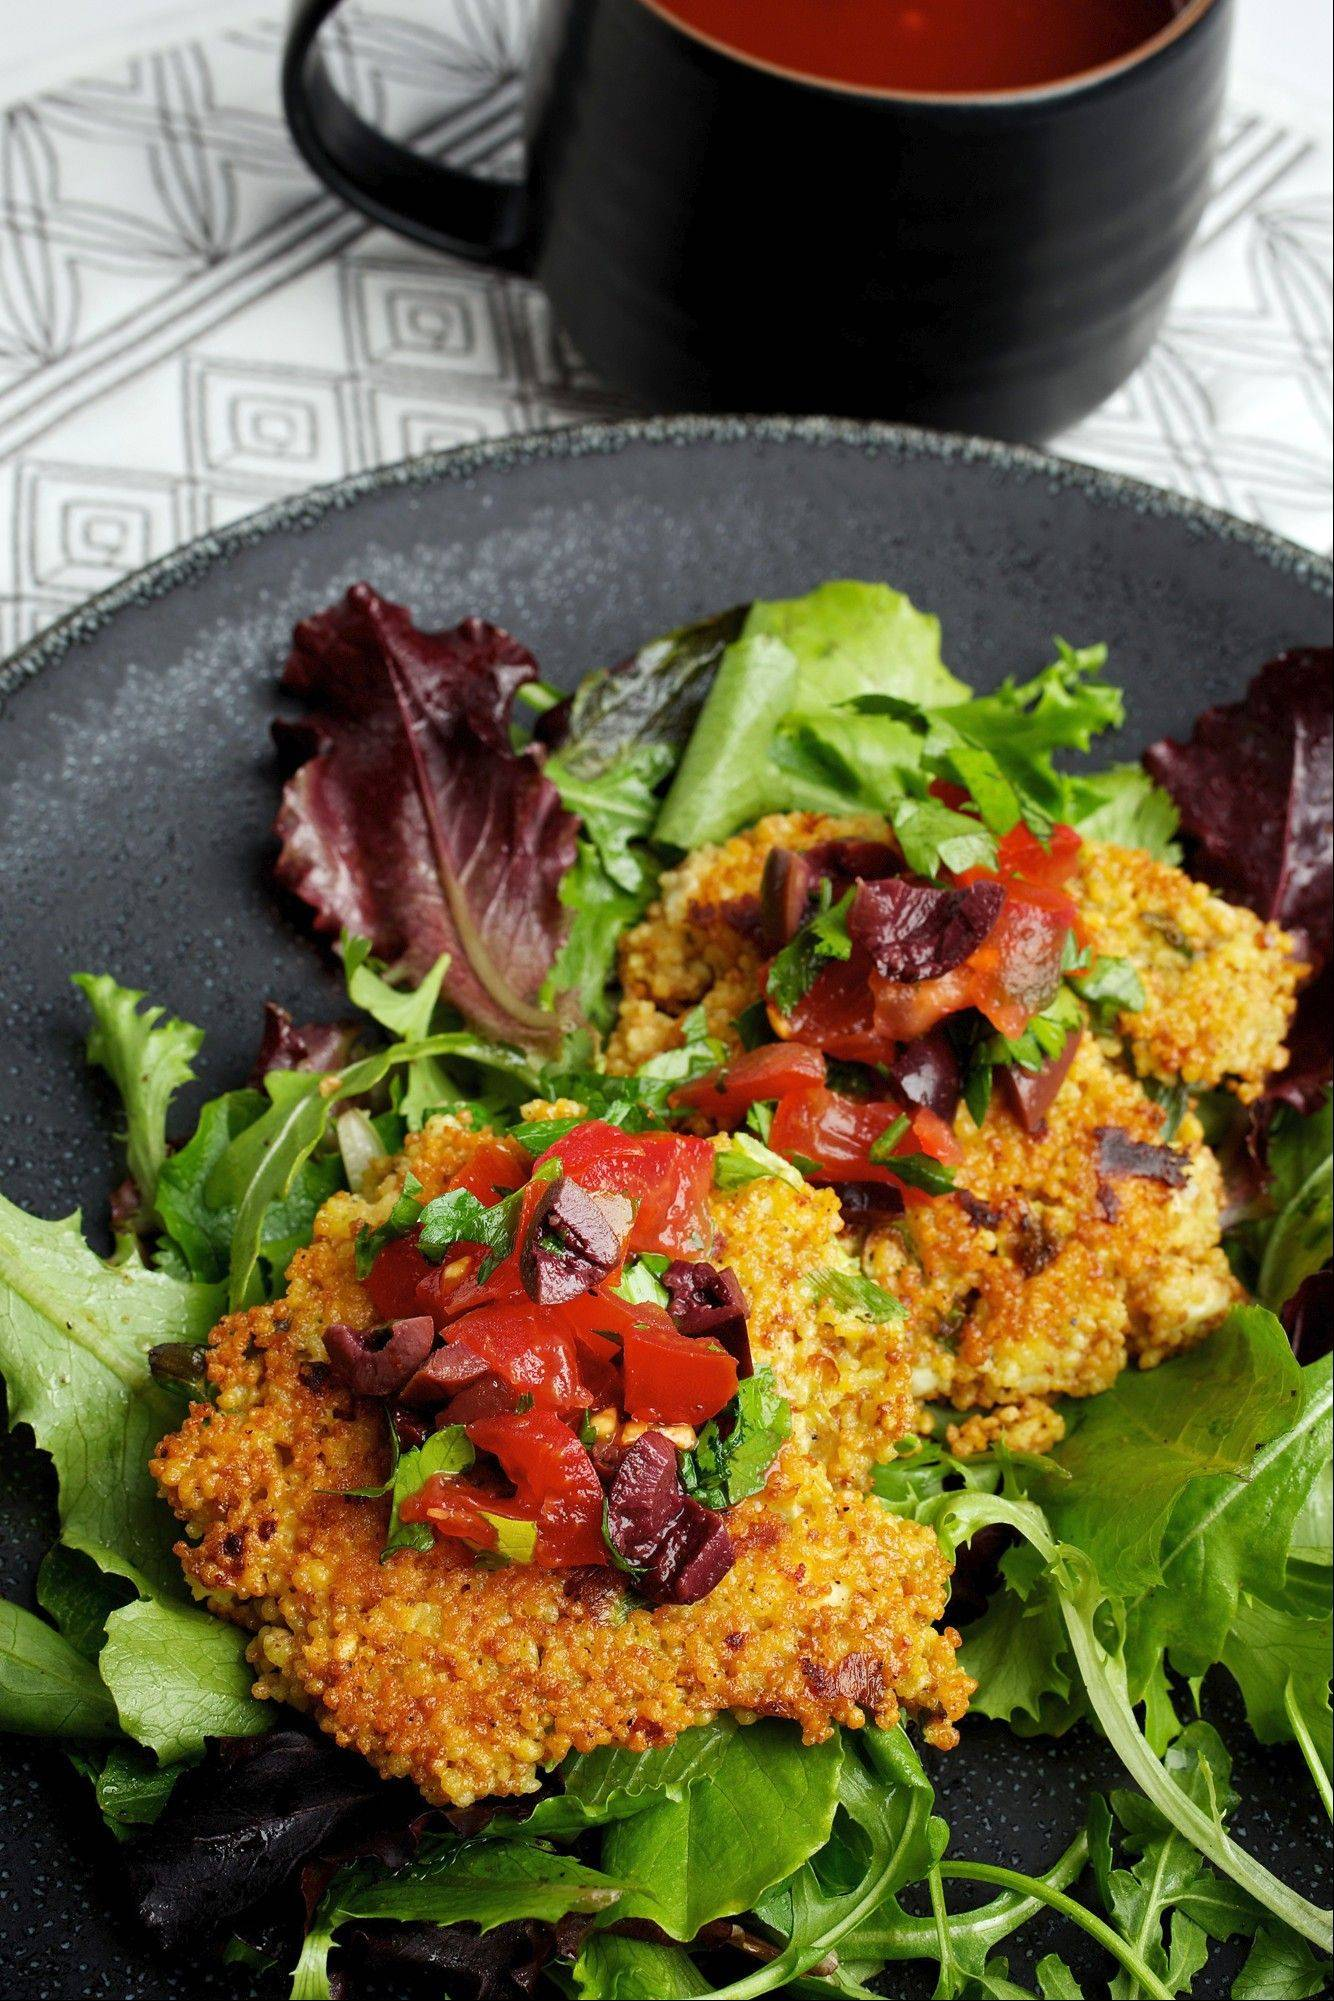 Adding warm components, like Feta-Scallion Couscous Cakes, amplifies winter salads.